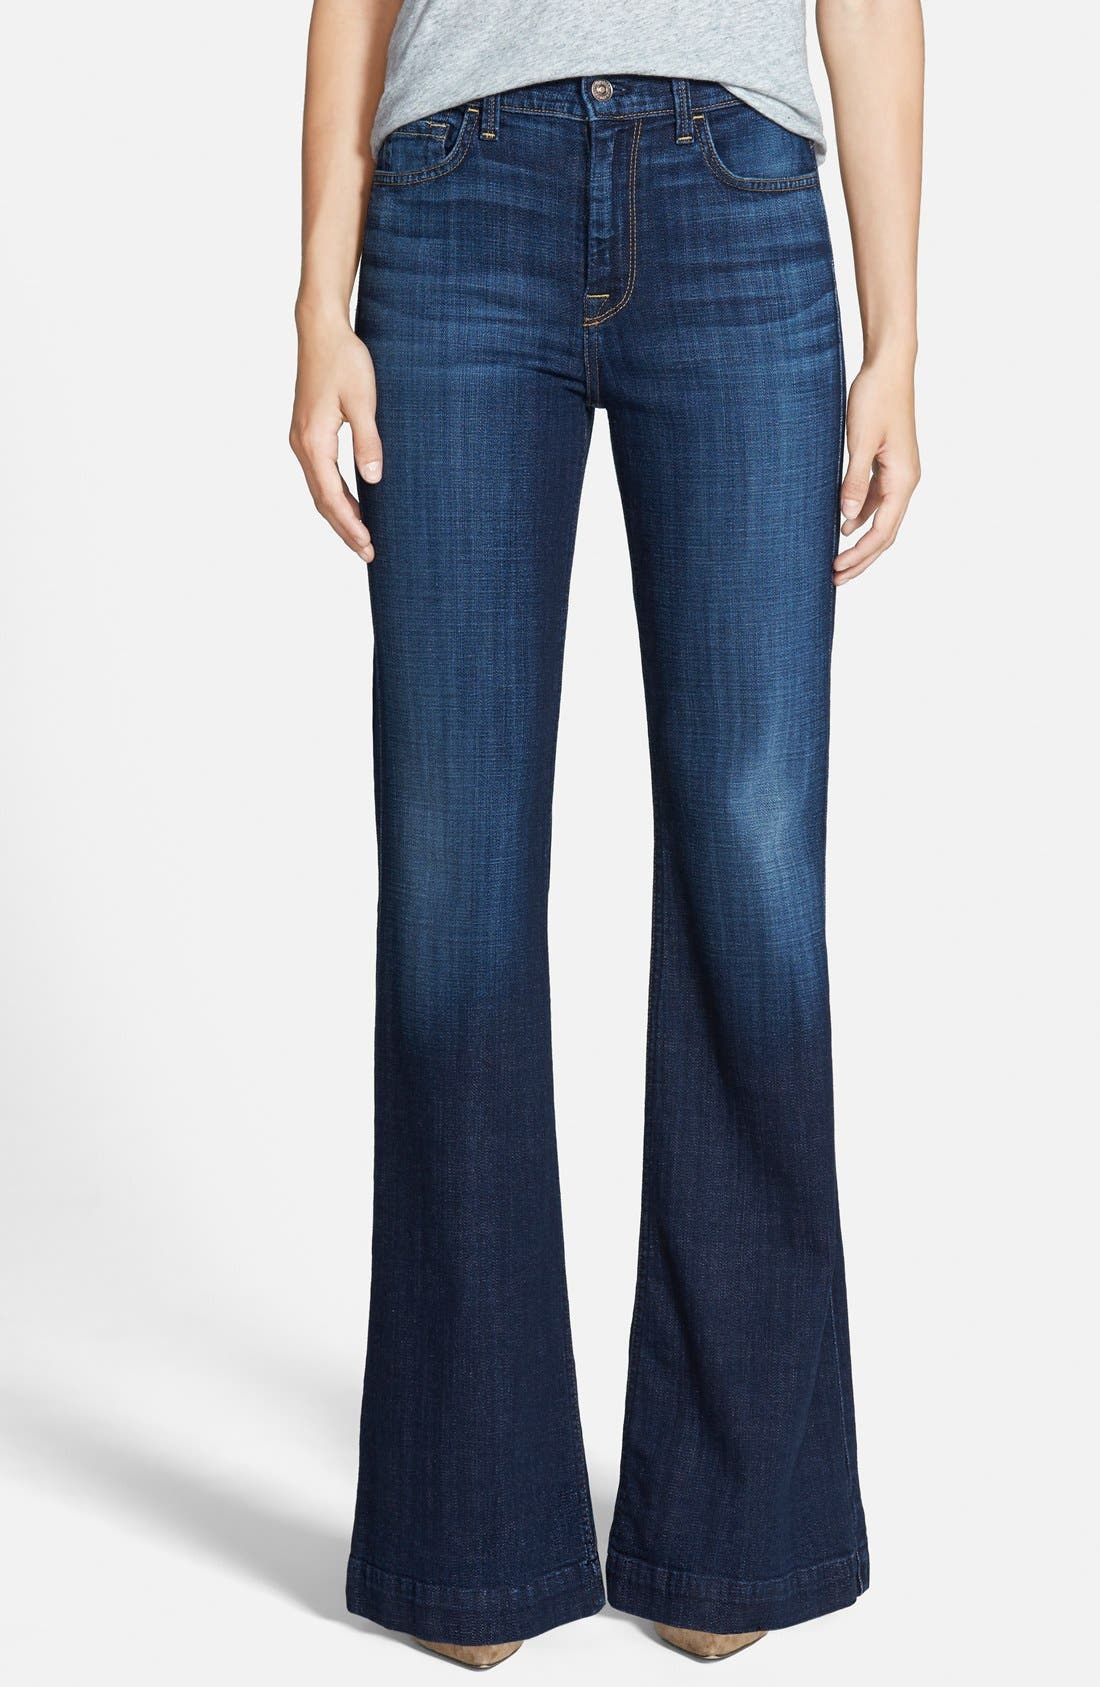 'Ginger' High Rise Flare Jeans, Main, color, 400